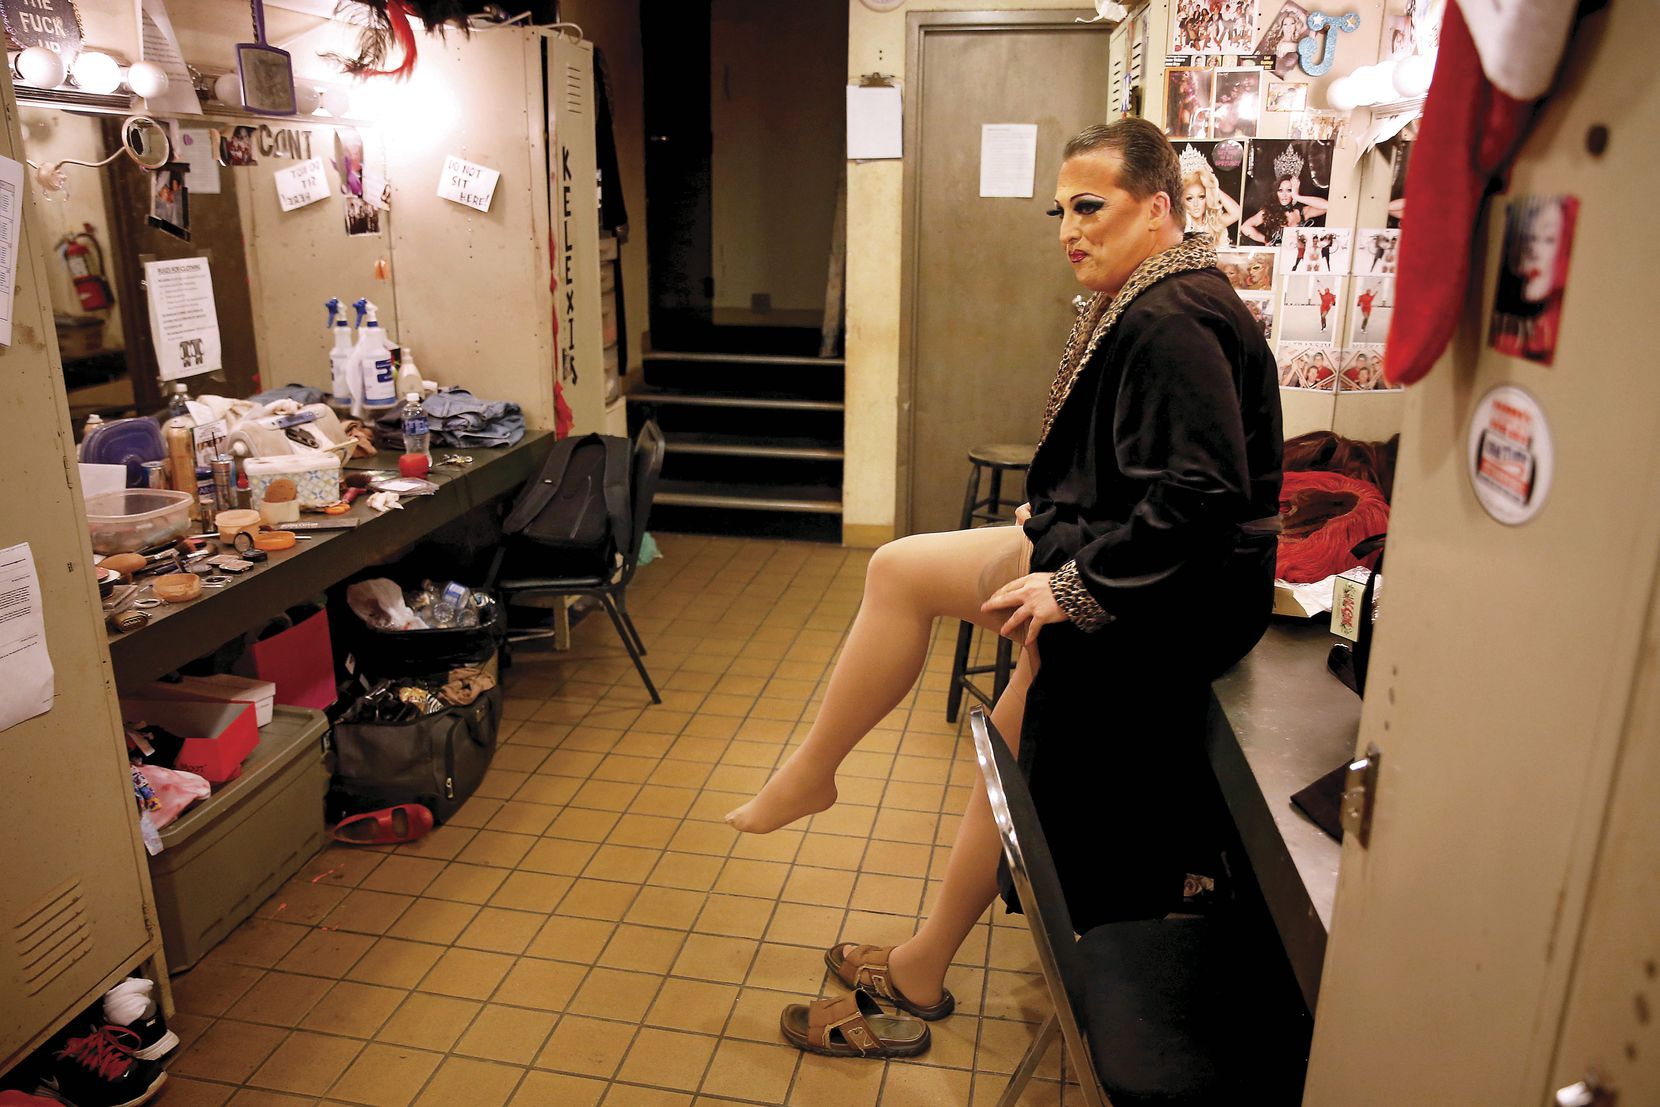 "James Love put on his pantyhose before performing as ""Cassie Nova""€ at Sue Ellen's in Dallas on June 14, two days after the slaughter of 49 people at a gay nightclub in Orlando. Love said he hoped his performance could promote healing."